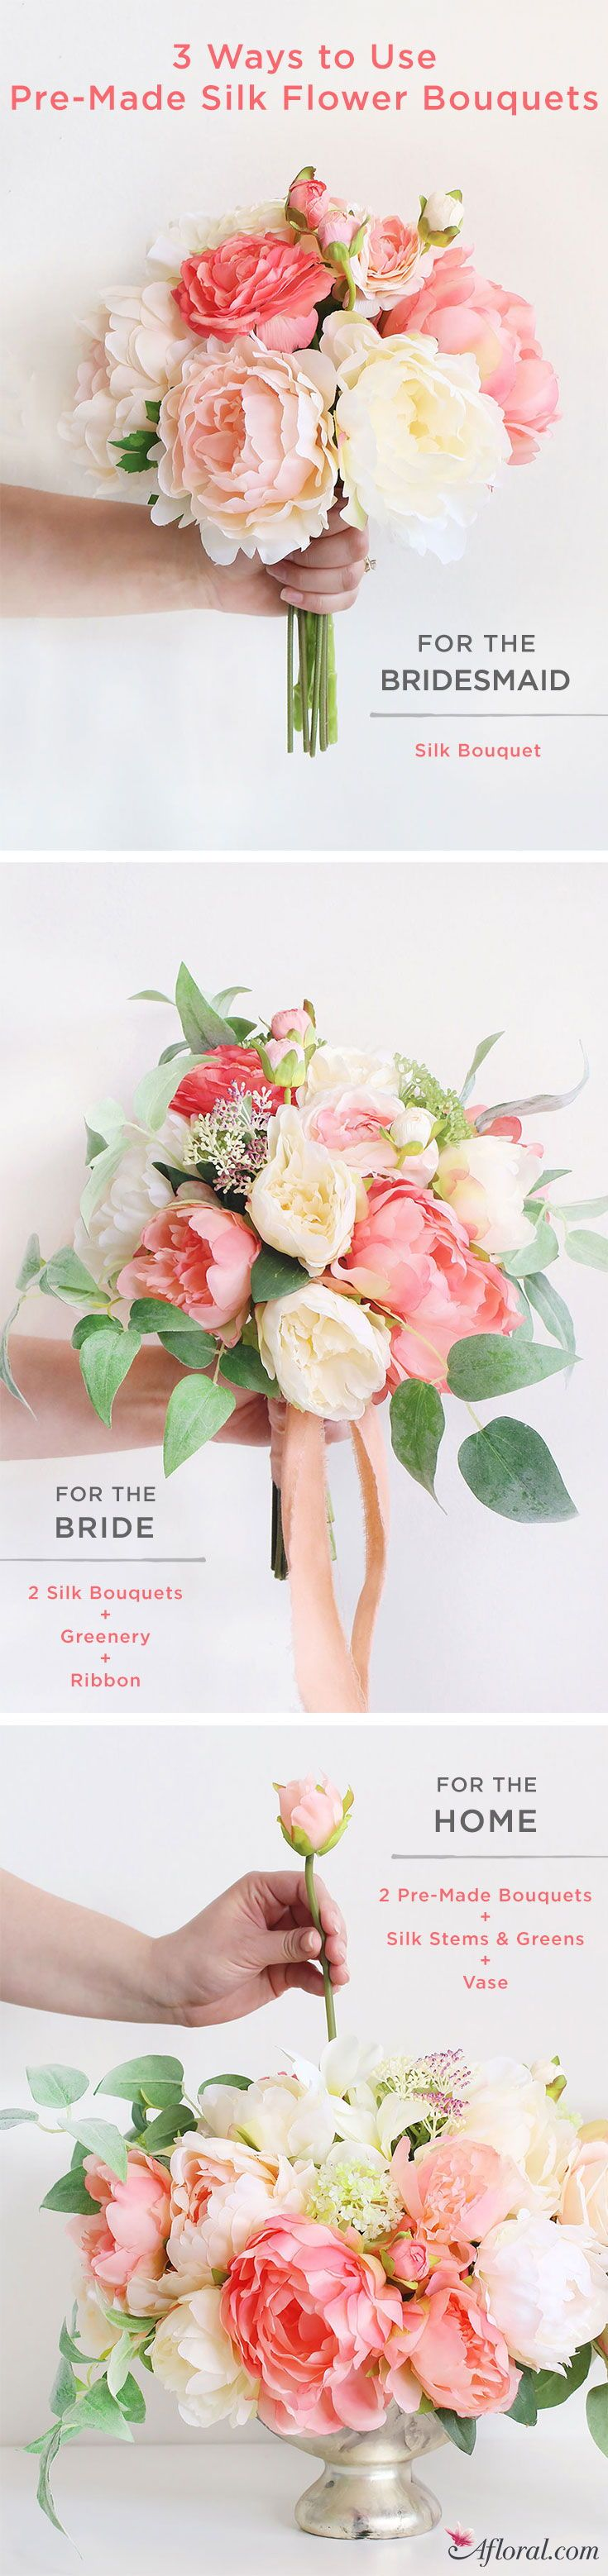 3 Ways To Use Pre Made Silk Flower Bouquets Bridal Bouquets